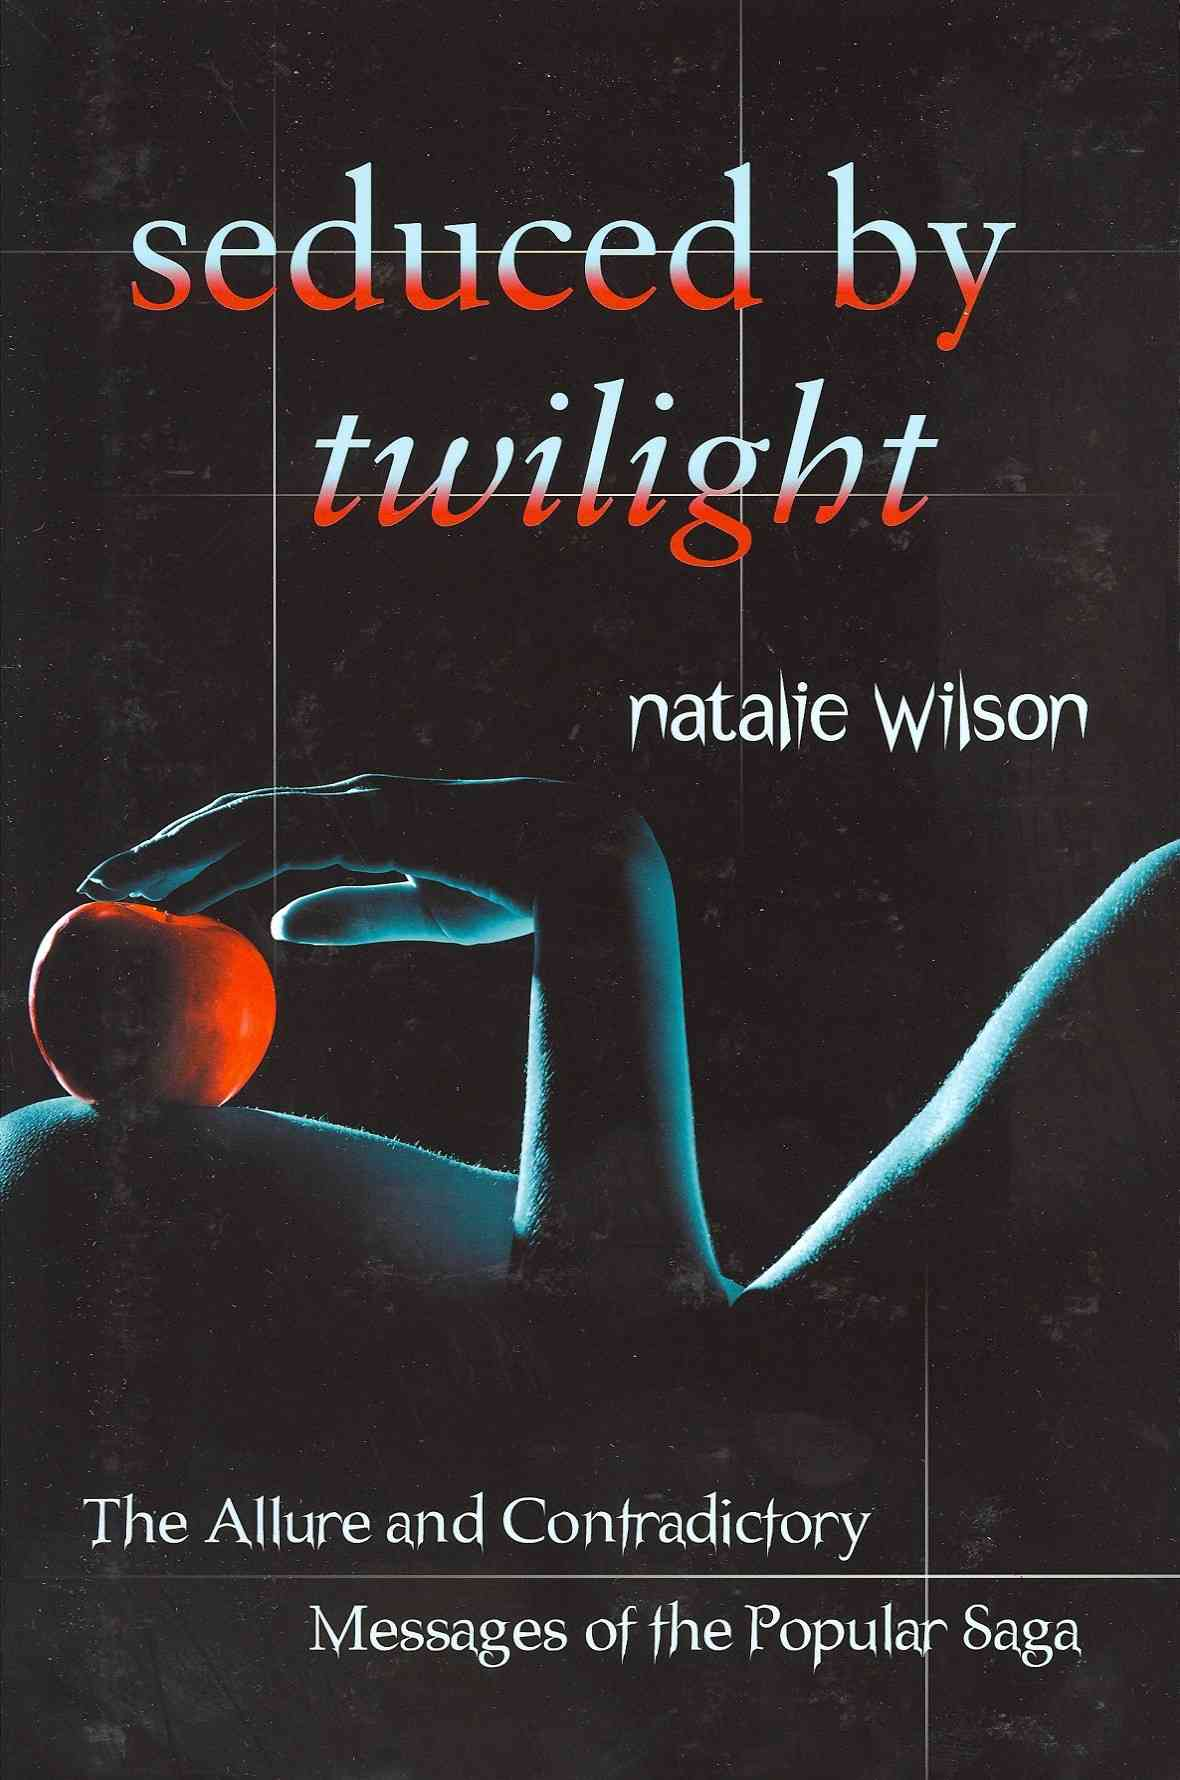 Seduced by Twilight: The Allure and Contradictory Messages of the Popular Saga (Paperback)